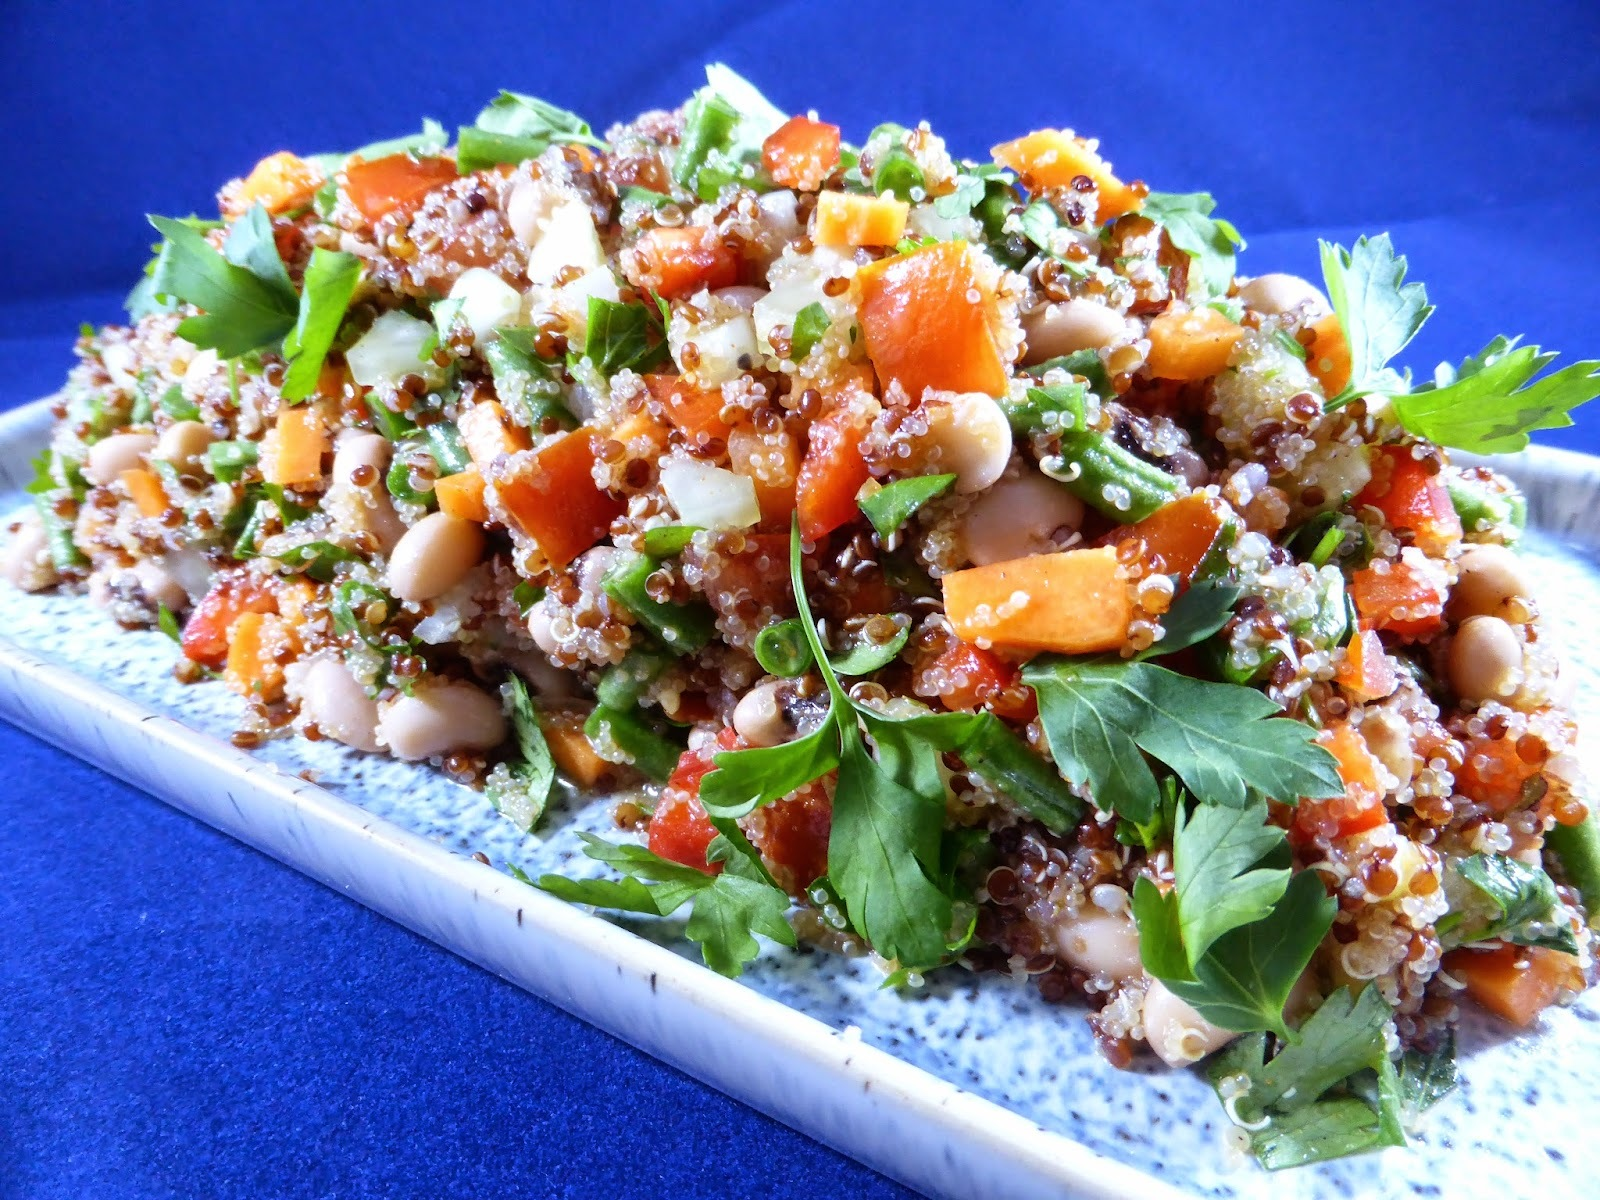 SUMA: Rocket & Roses Amaranth & Quinoa Cajun Vegetable Salad (vegan & gluten-free)